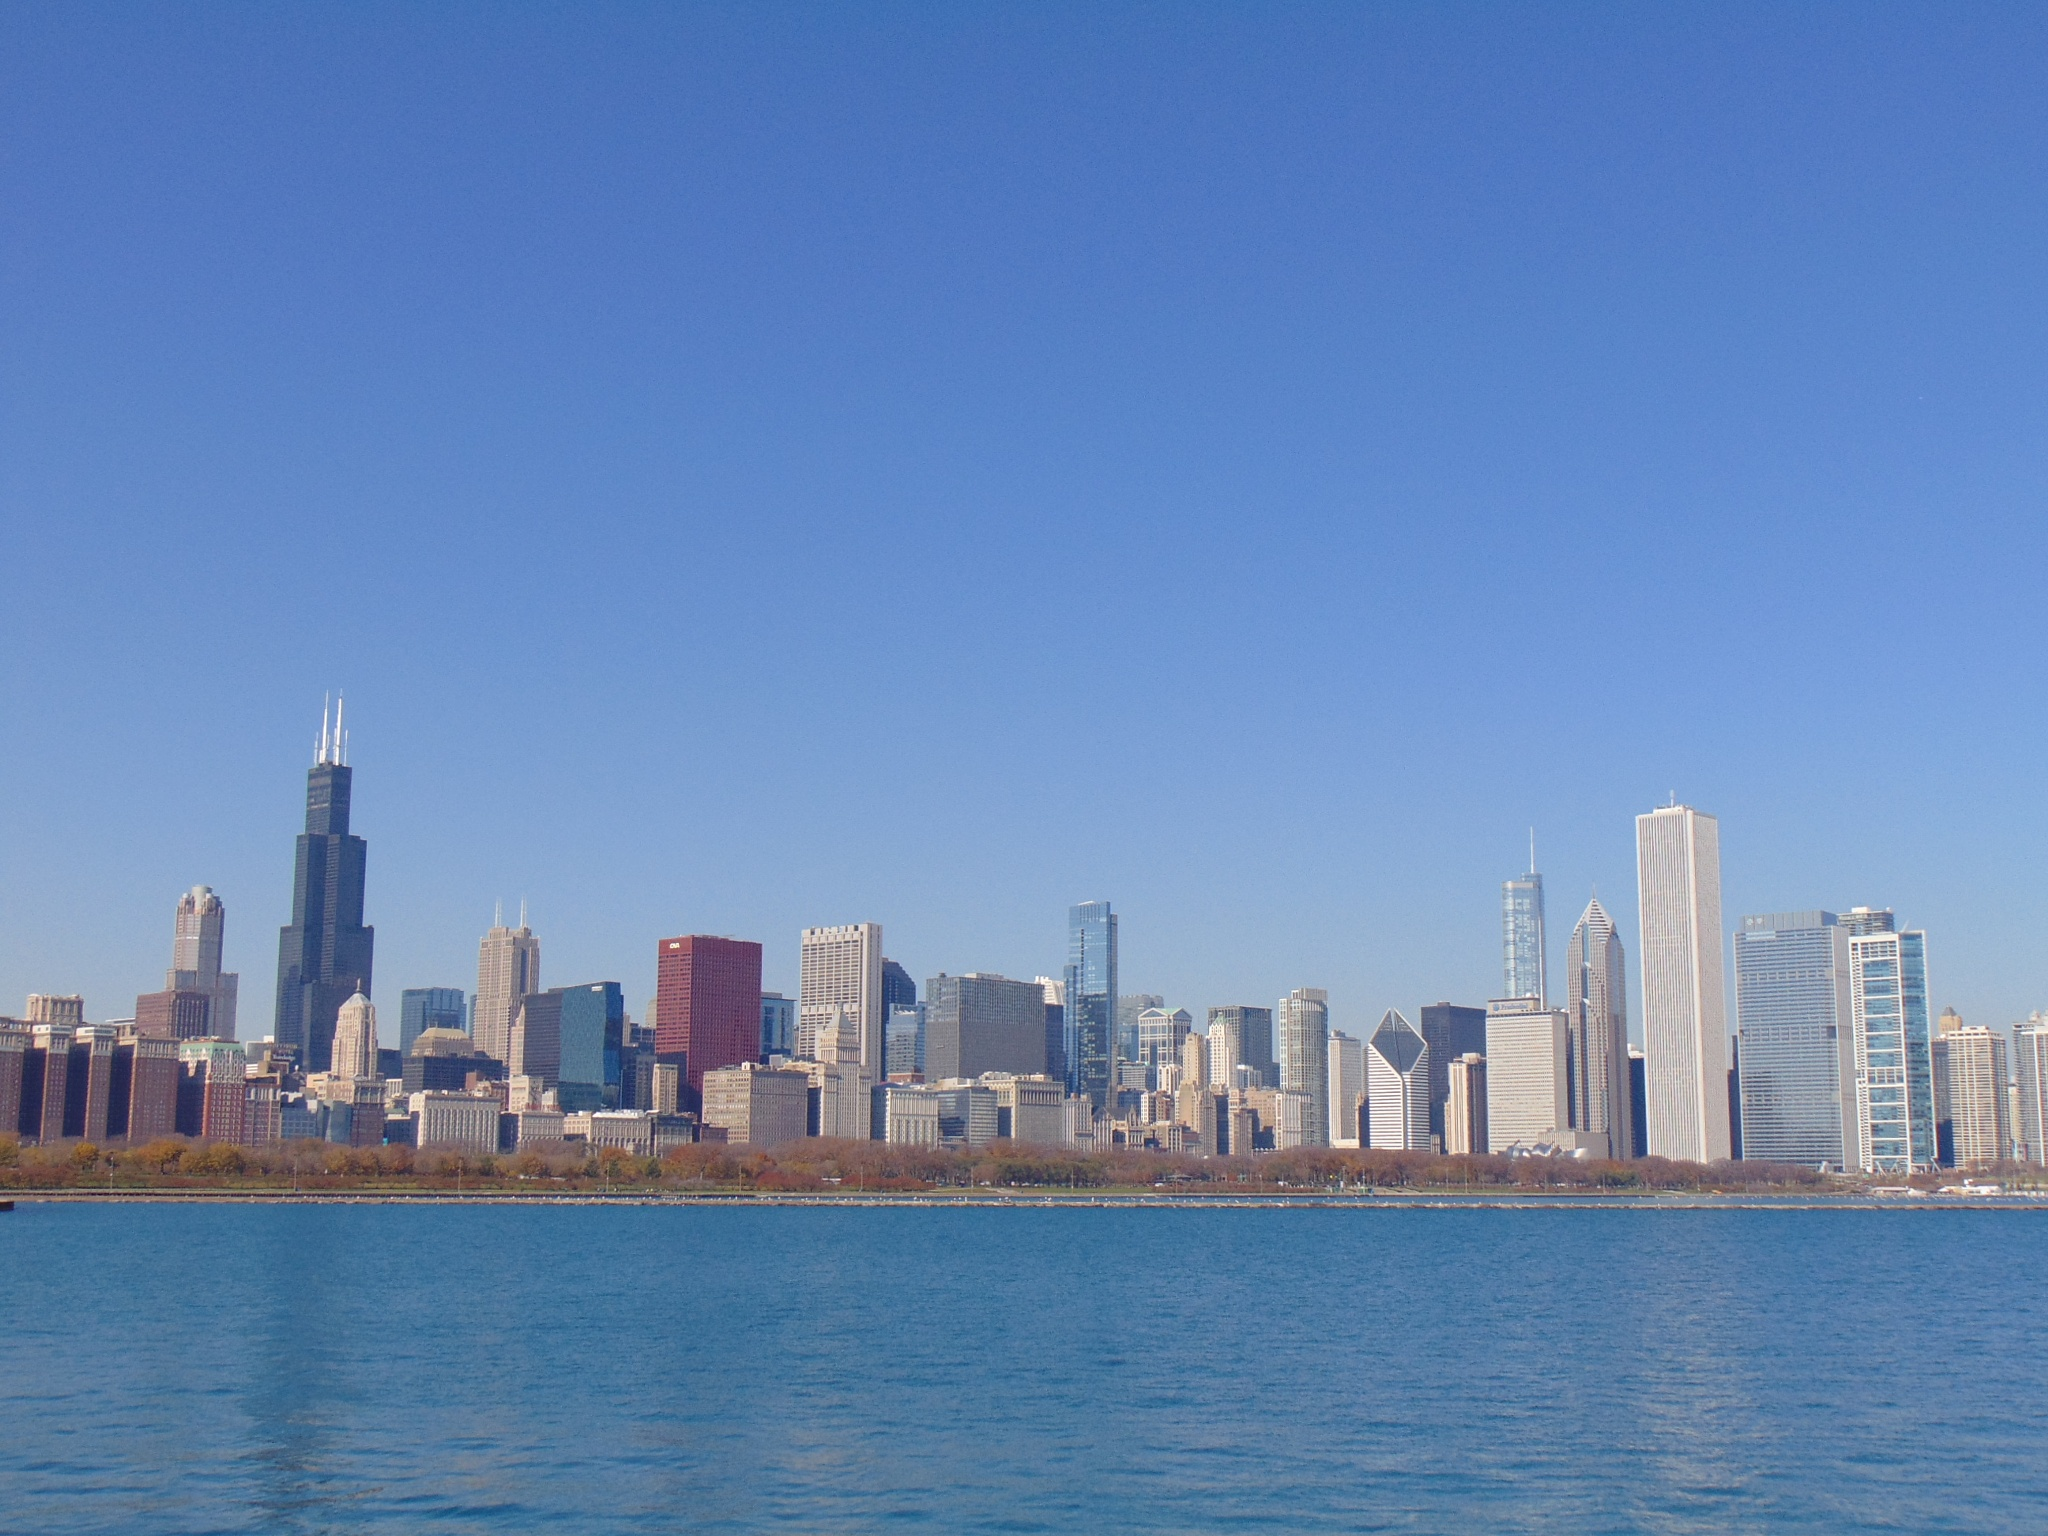 Chicago by Denna M. Moore